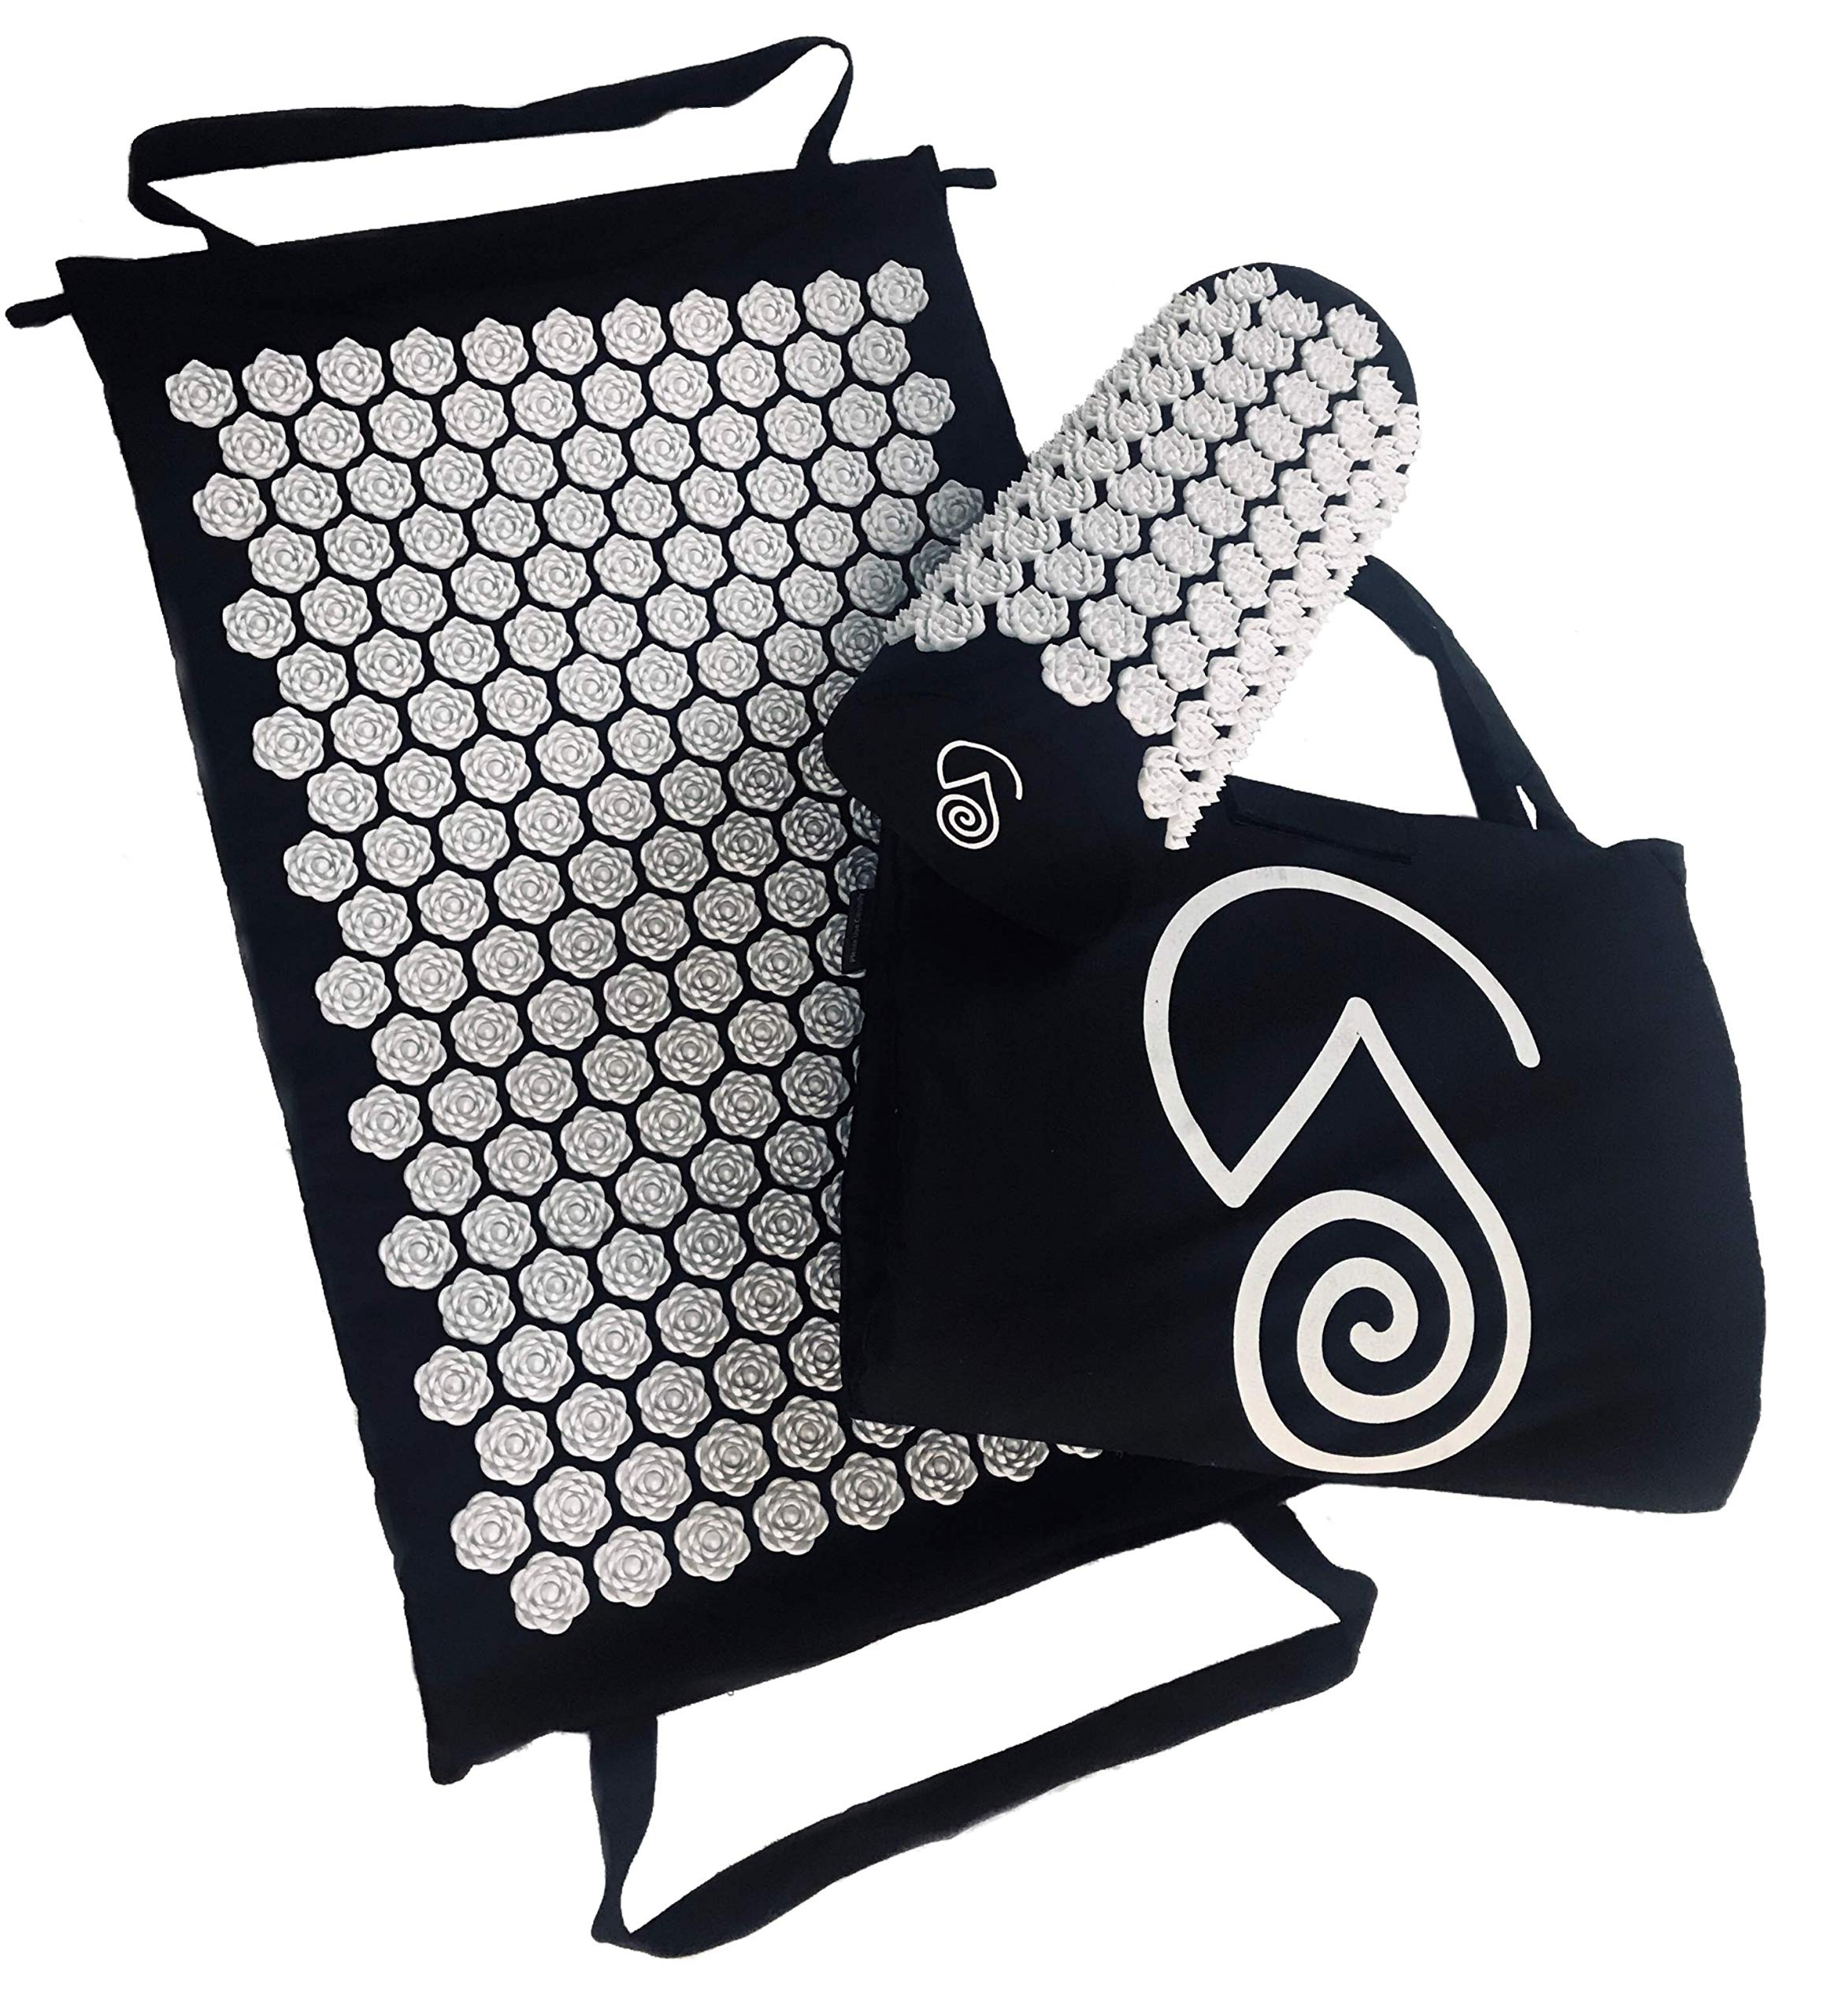 Acupressure Massage Back Mat and Prana Neck Pillow | Organic Eco Cotton Acupuncture Mats by Wellness Collections. Massager Sleep Set for Nerve Pain | Sciatic Relief - Full Body | Hypoallergenic